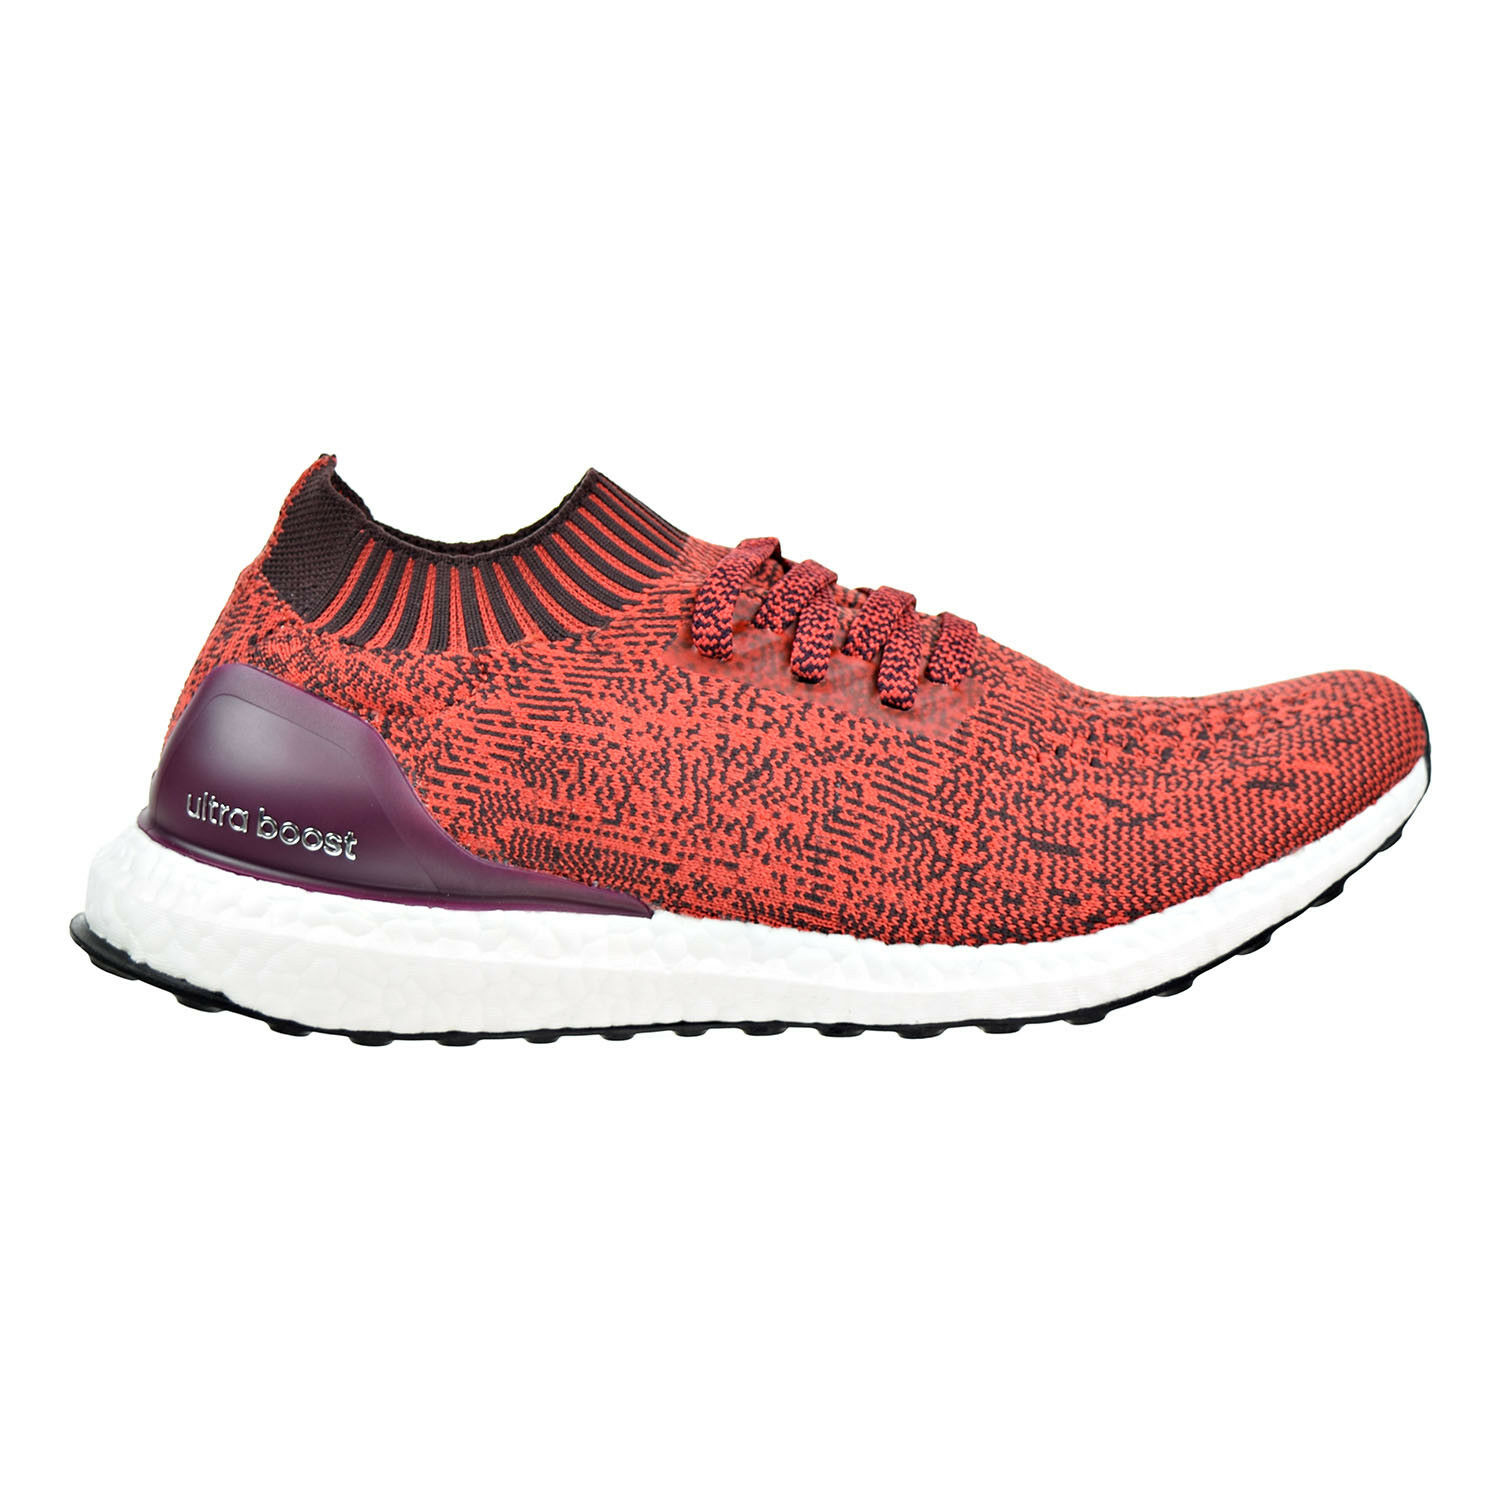 Adidas UltraBoost Uncaged Men's Running Shoes Dark Burgundy/Tactile Red by2554